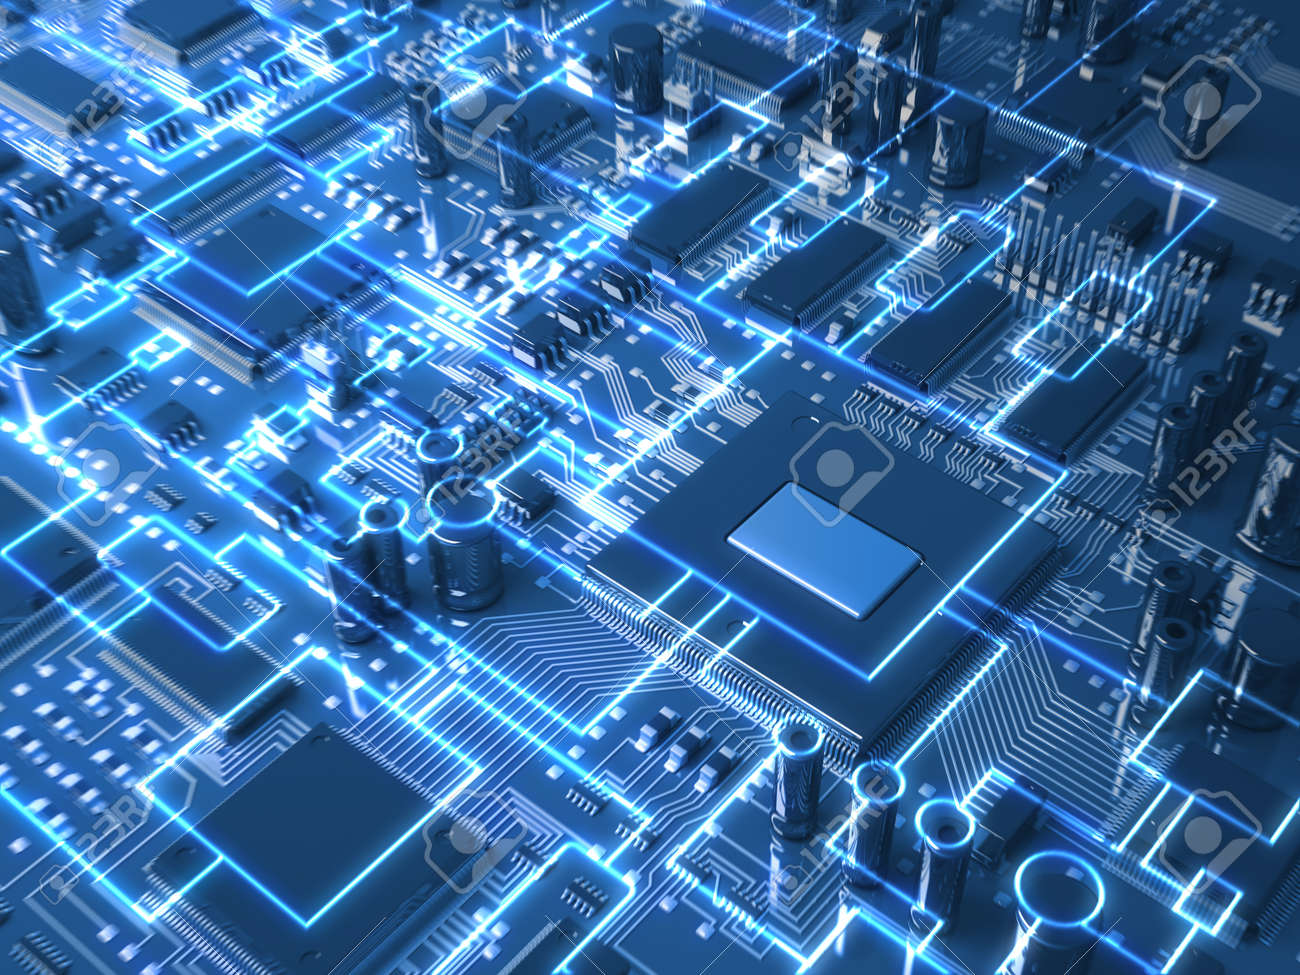 Circuit Board Stock Photos Royalty Free Images Clip Art Image Simple Drawing Of A Fantasy Or Mainboard With Microcircuits And Processors Technology 3d Illustration